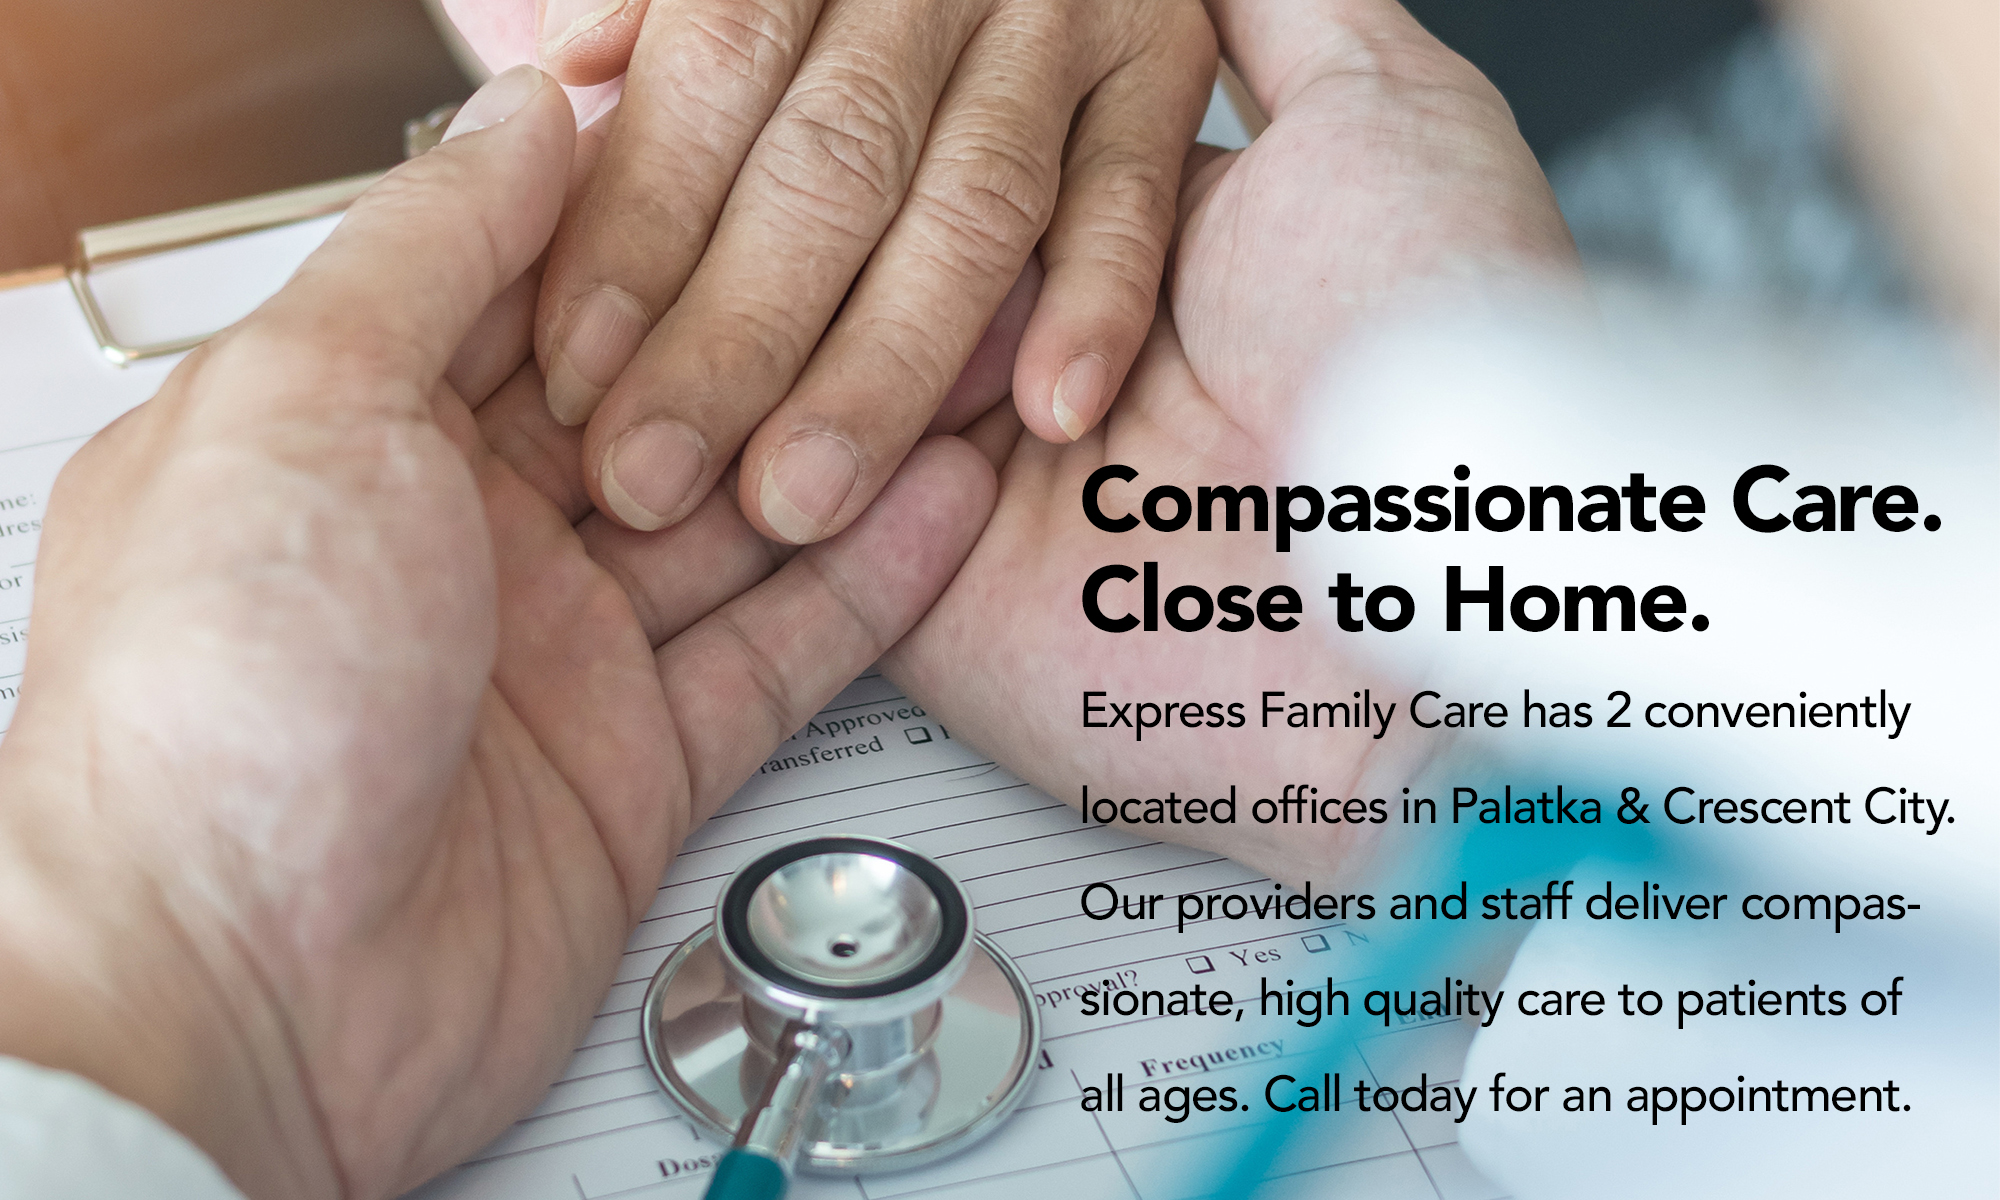 Compassionate Care and Close to Home